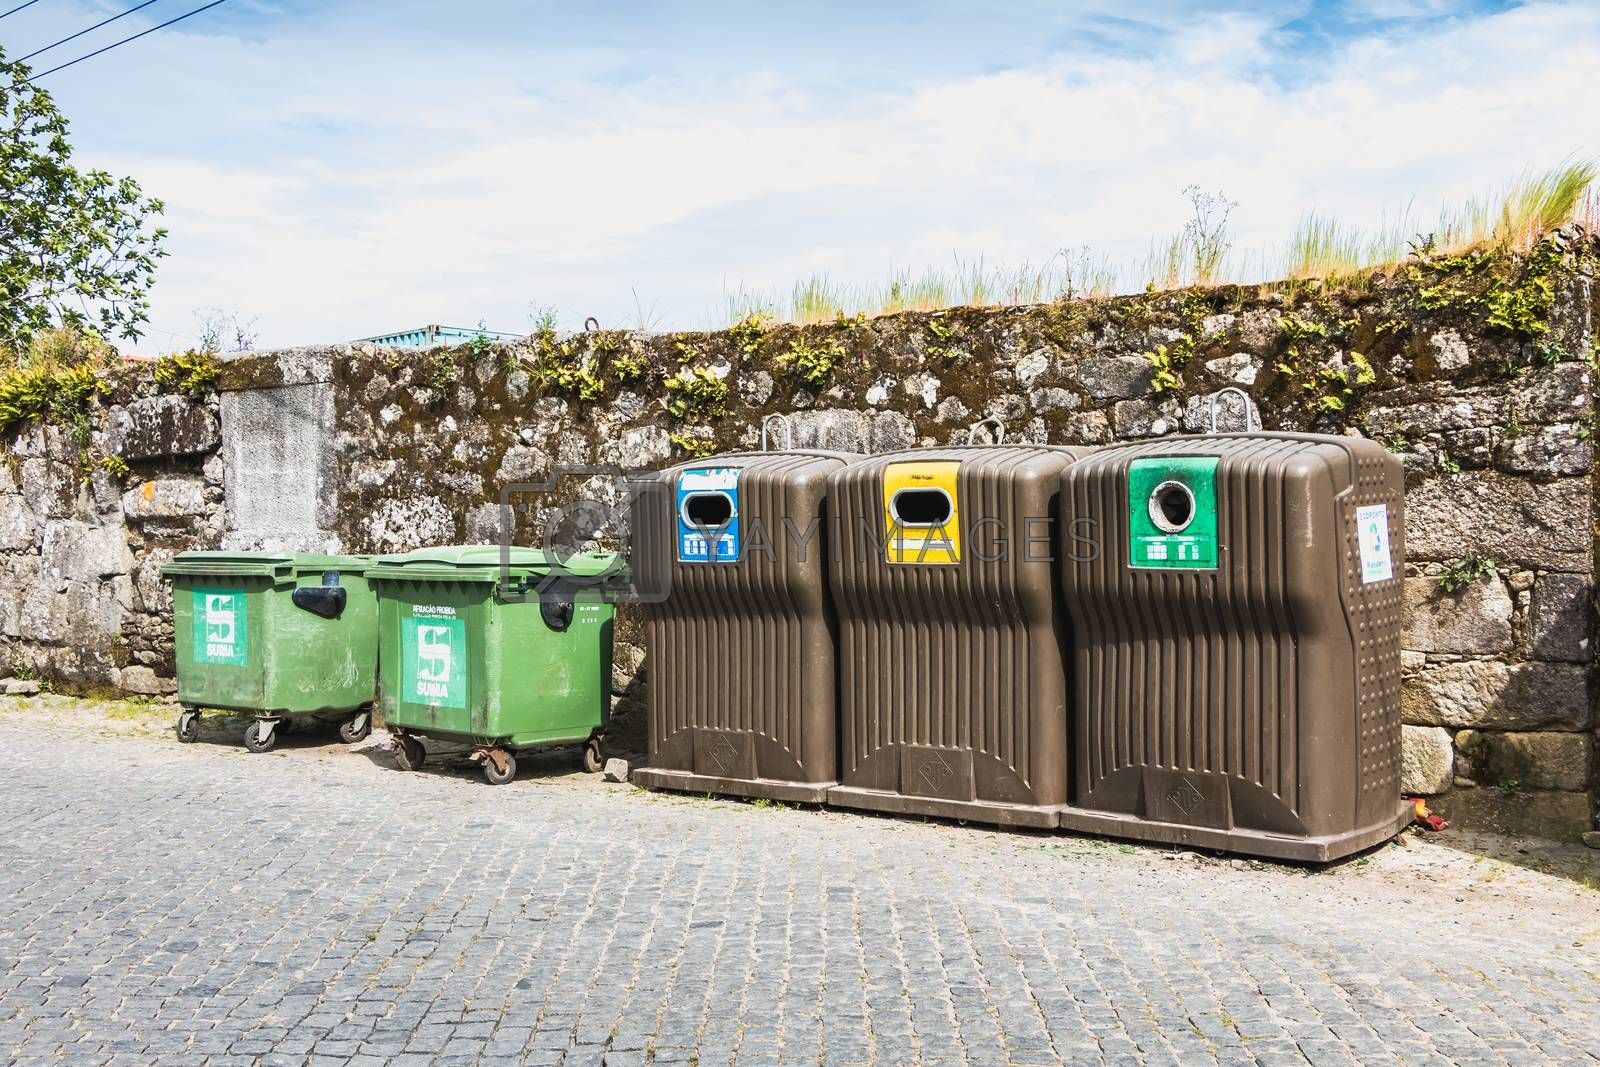 Vila Cha near Esposende, Portugal - May 9, 2018: Public recycling bins in front of a stone wall in the city center on a spring day